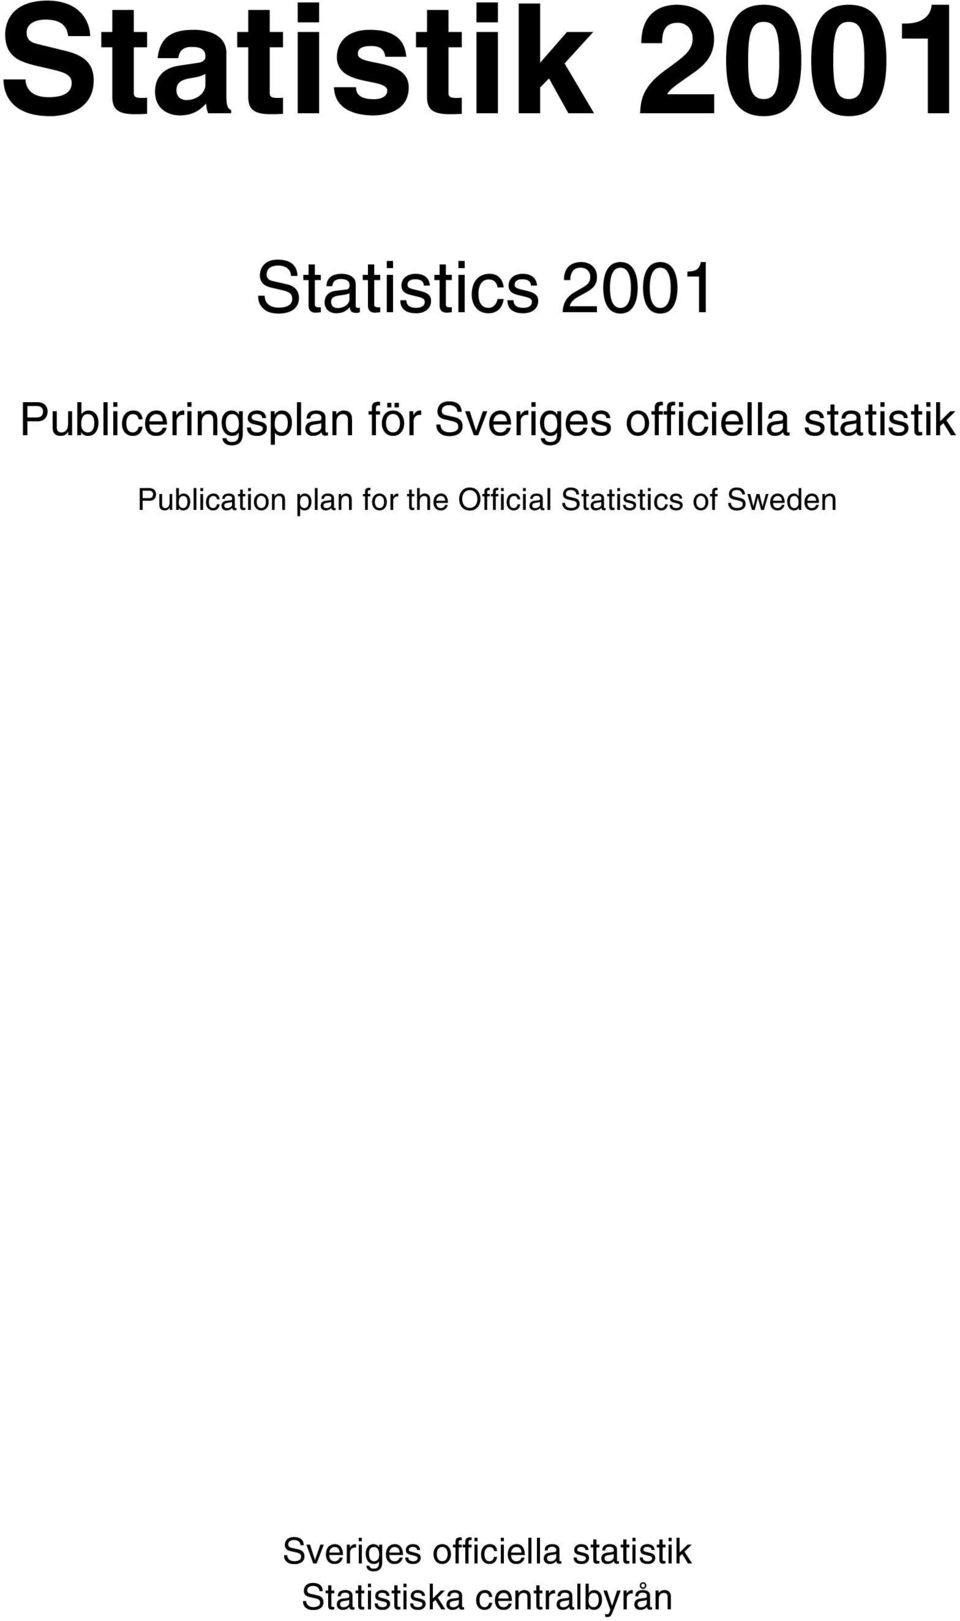 plan for the Official Statistics of Sweden